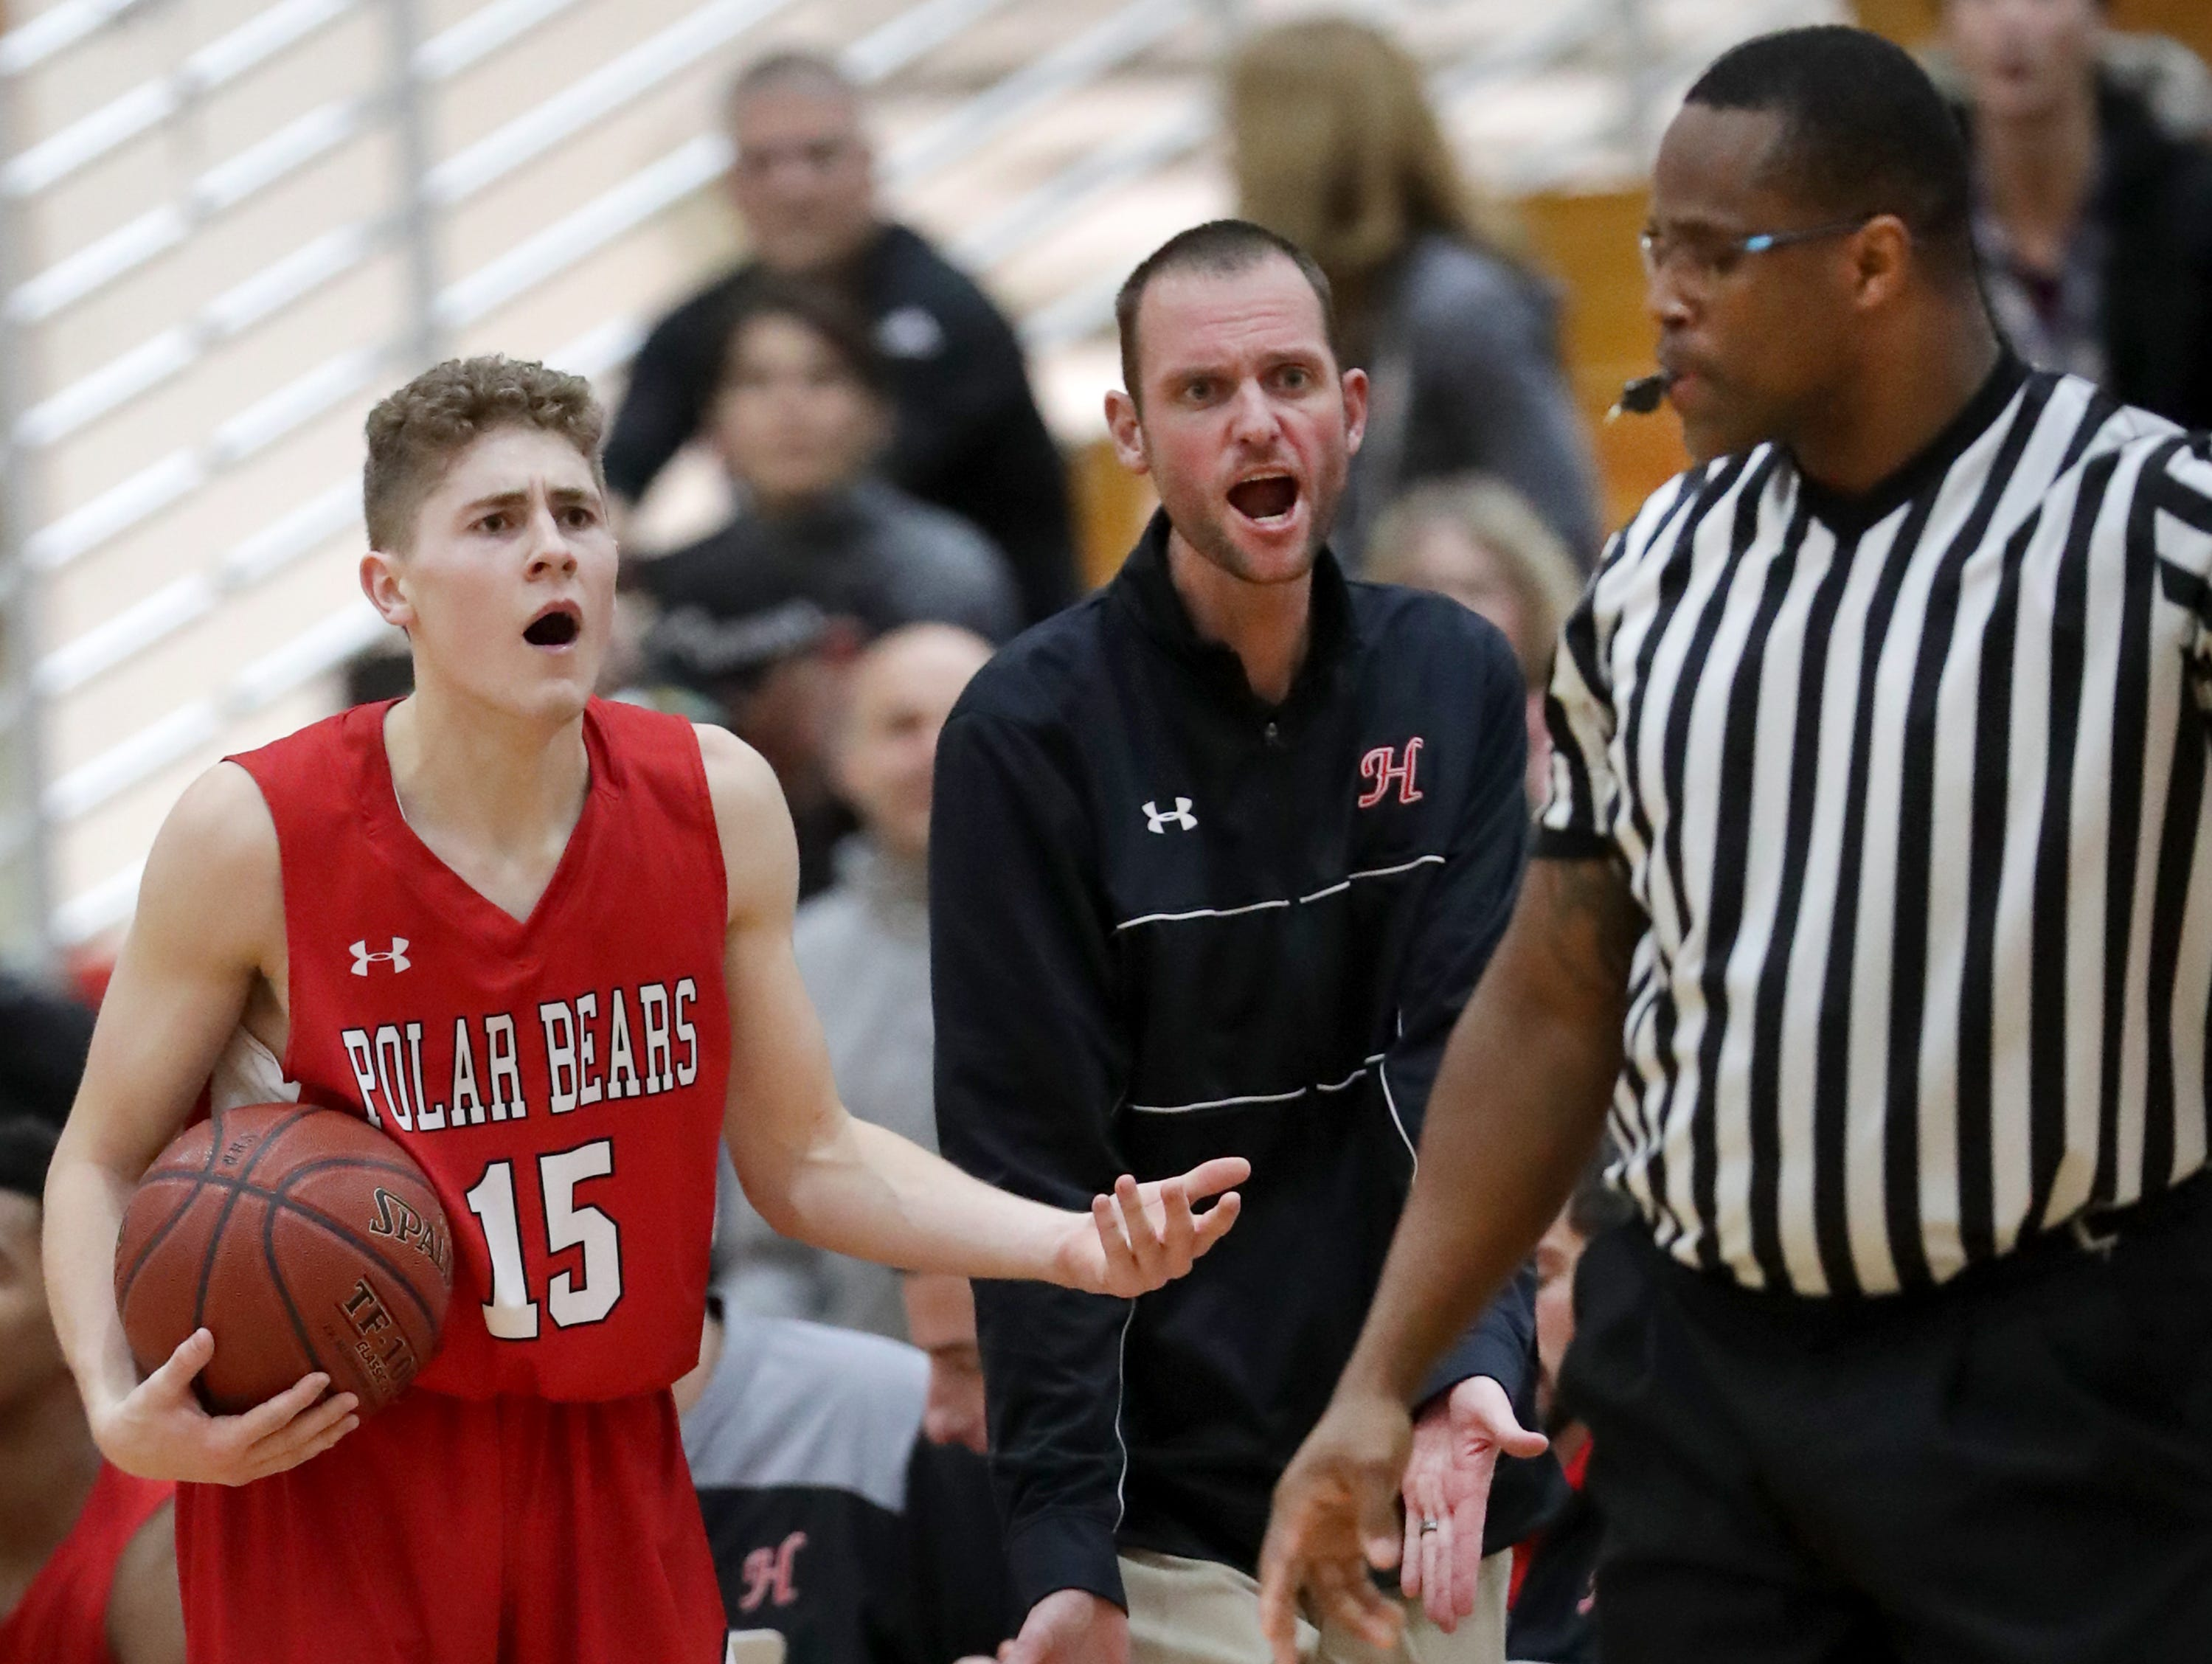 Hortonville High School's #15 Cole Warning argues an out of bounds call in the final seconds of overtime against Neenah High School during their Fox Valley Association boys basketball game on Friday, November 30, 2018, in Neenah, Wis. Neenah defeated Hortonville 71 to 67 in overtime.Wm. Glasheen/USA TODAY NETWORK-Wisconsin.